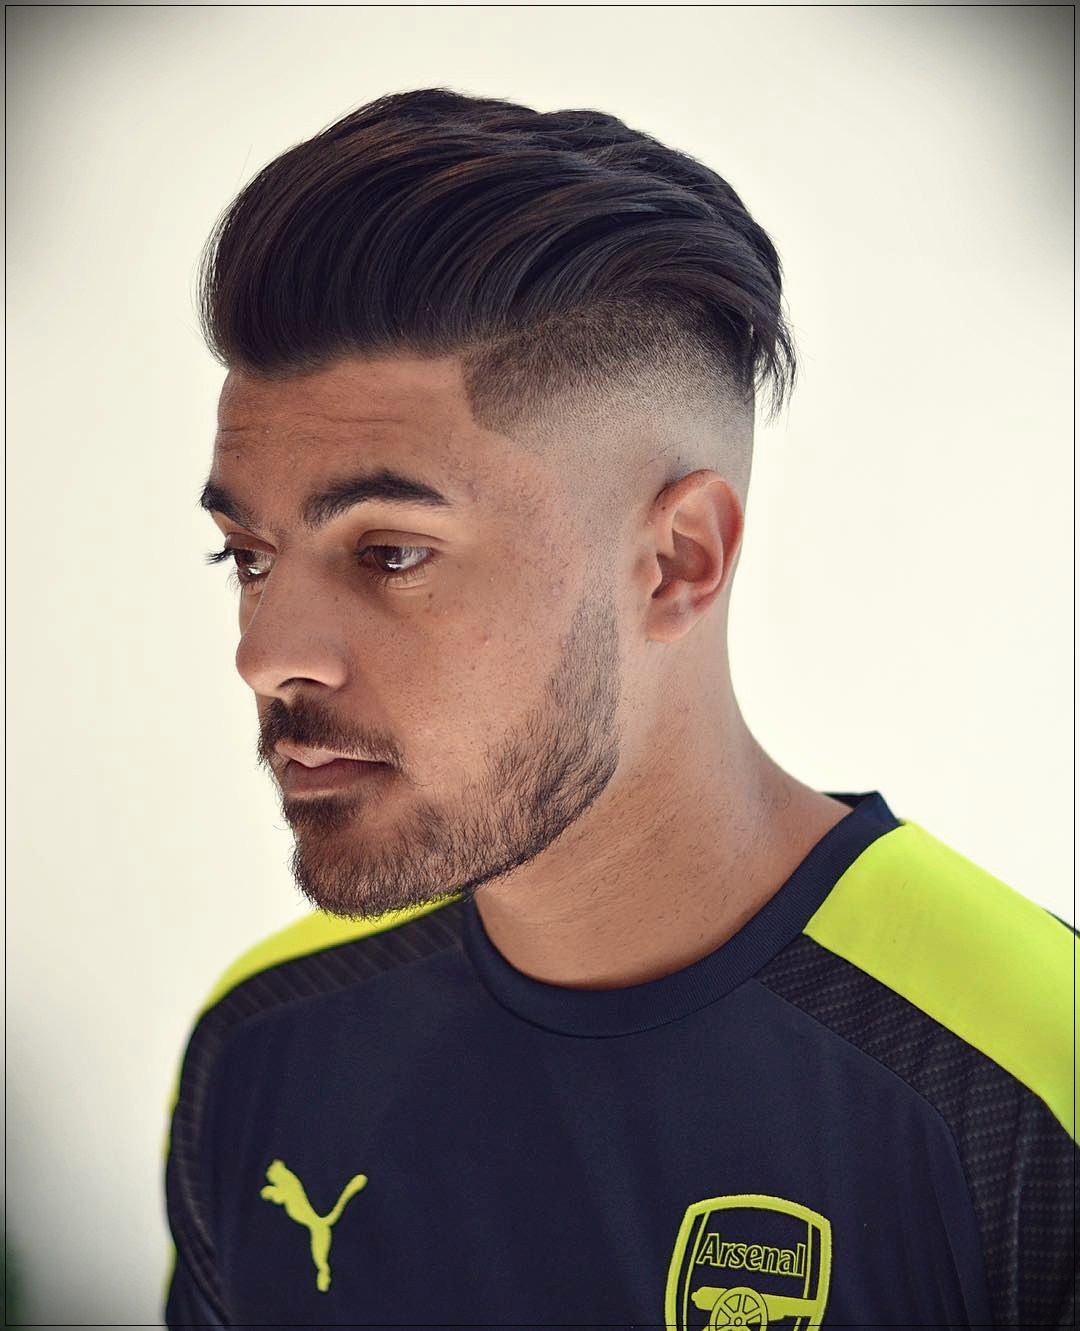 Short haircuts for men in 2018 25 - Sport these Short Haircuts for men in 2018